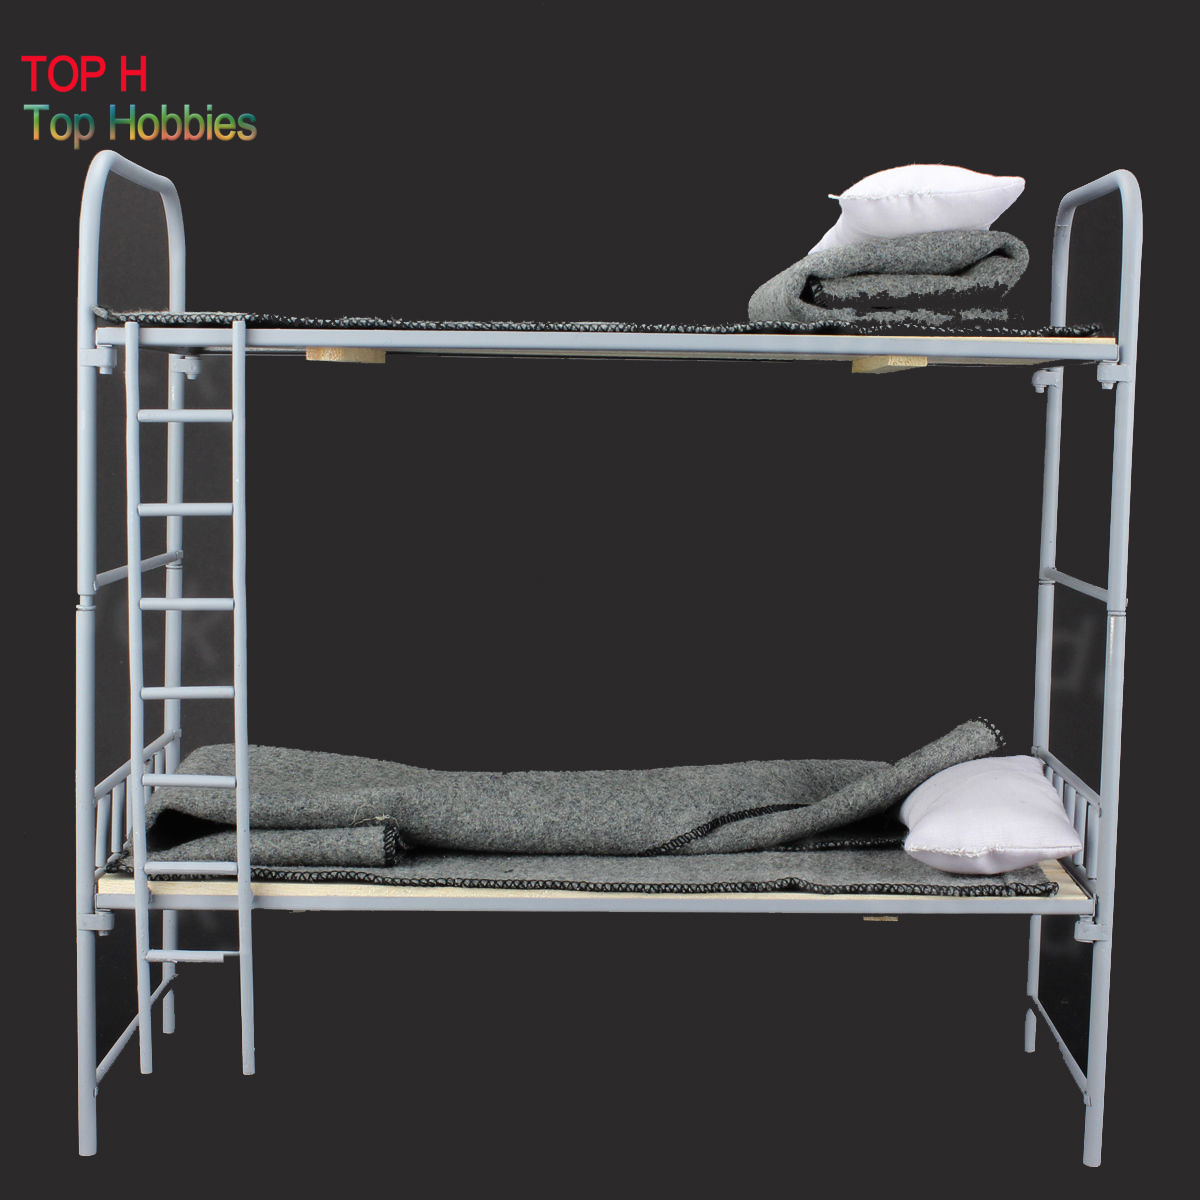 Toy Model WWII German 1/6 Scale Metal & Wooden Bunk Bed Set For 12 Figure 1 30 wwii german mechanized forces captured the urban combat scenarios alloy model suits the scene fm